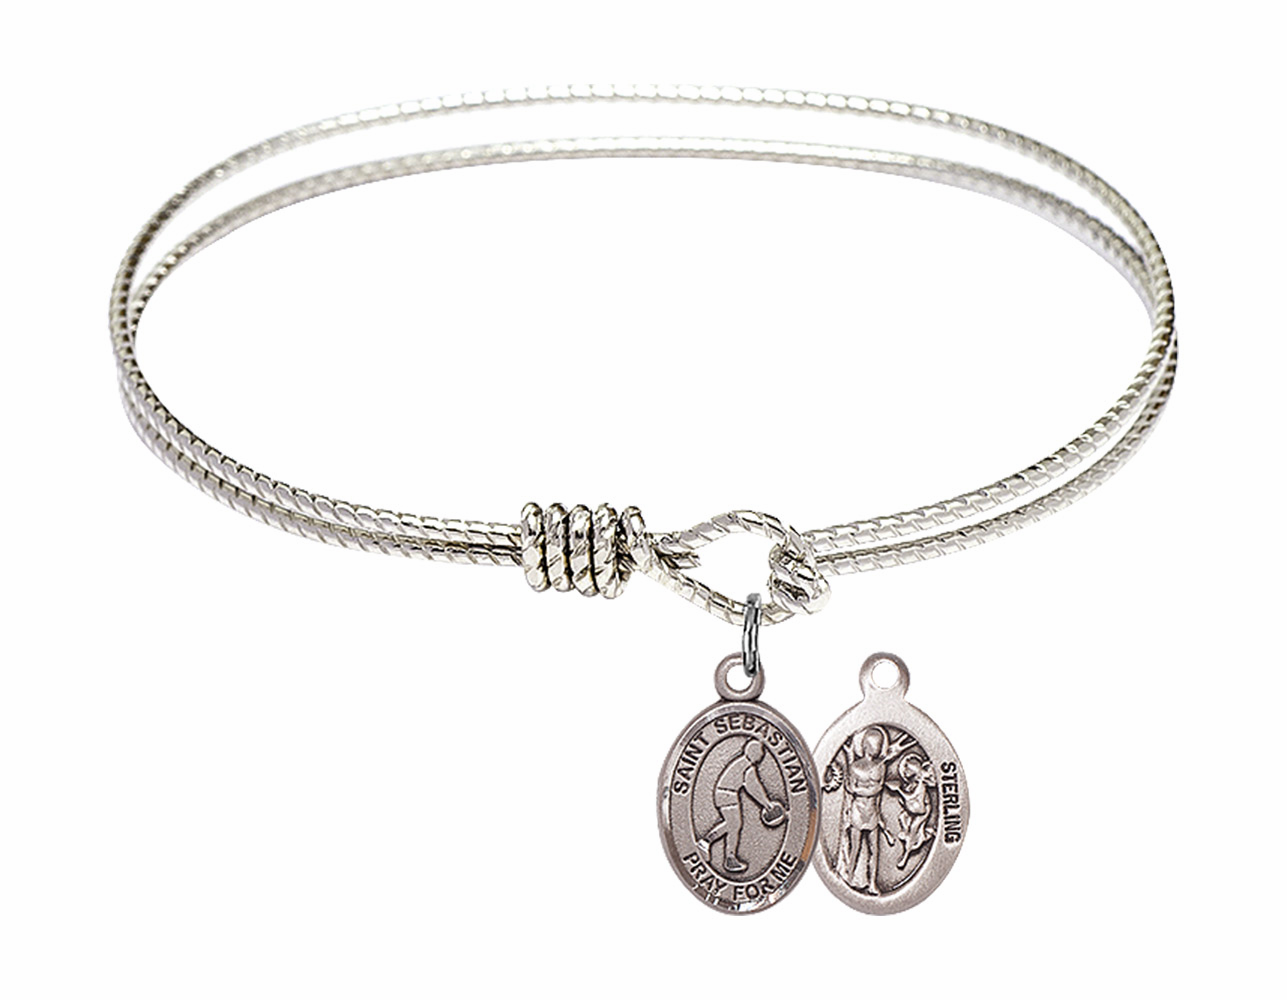 Twist Round Eye Hook St Sebastian Basketball Bangle Charm Bracelet by Bliss